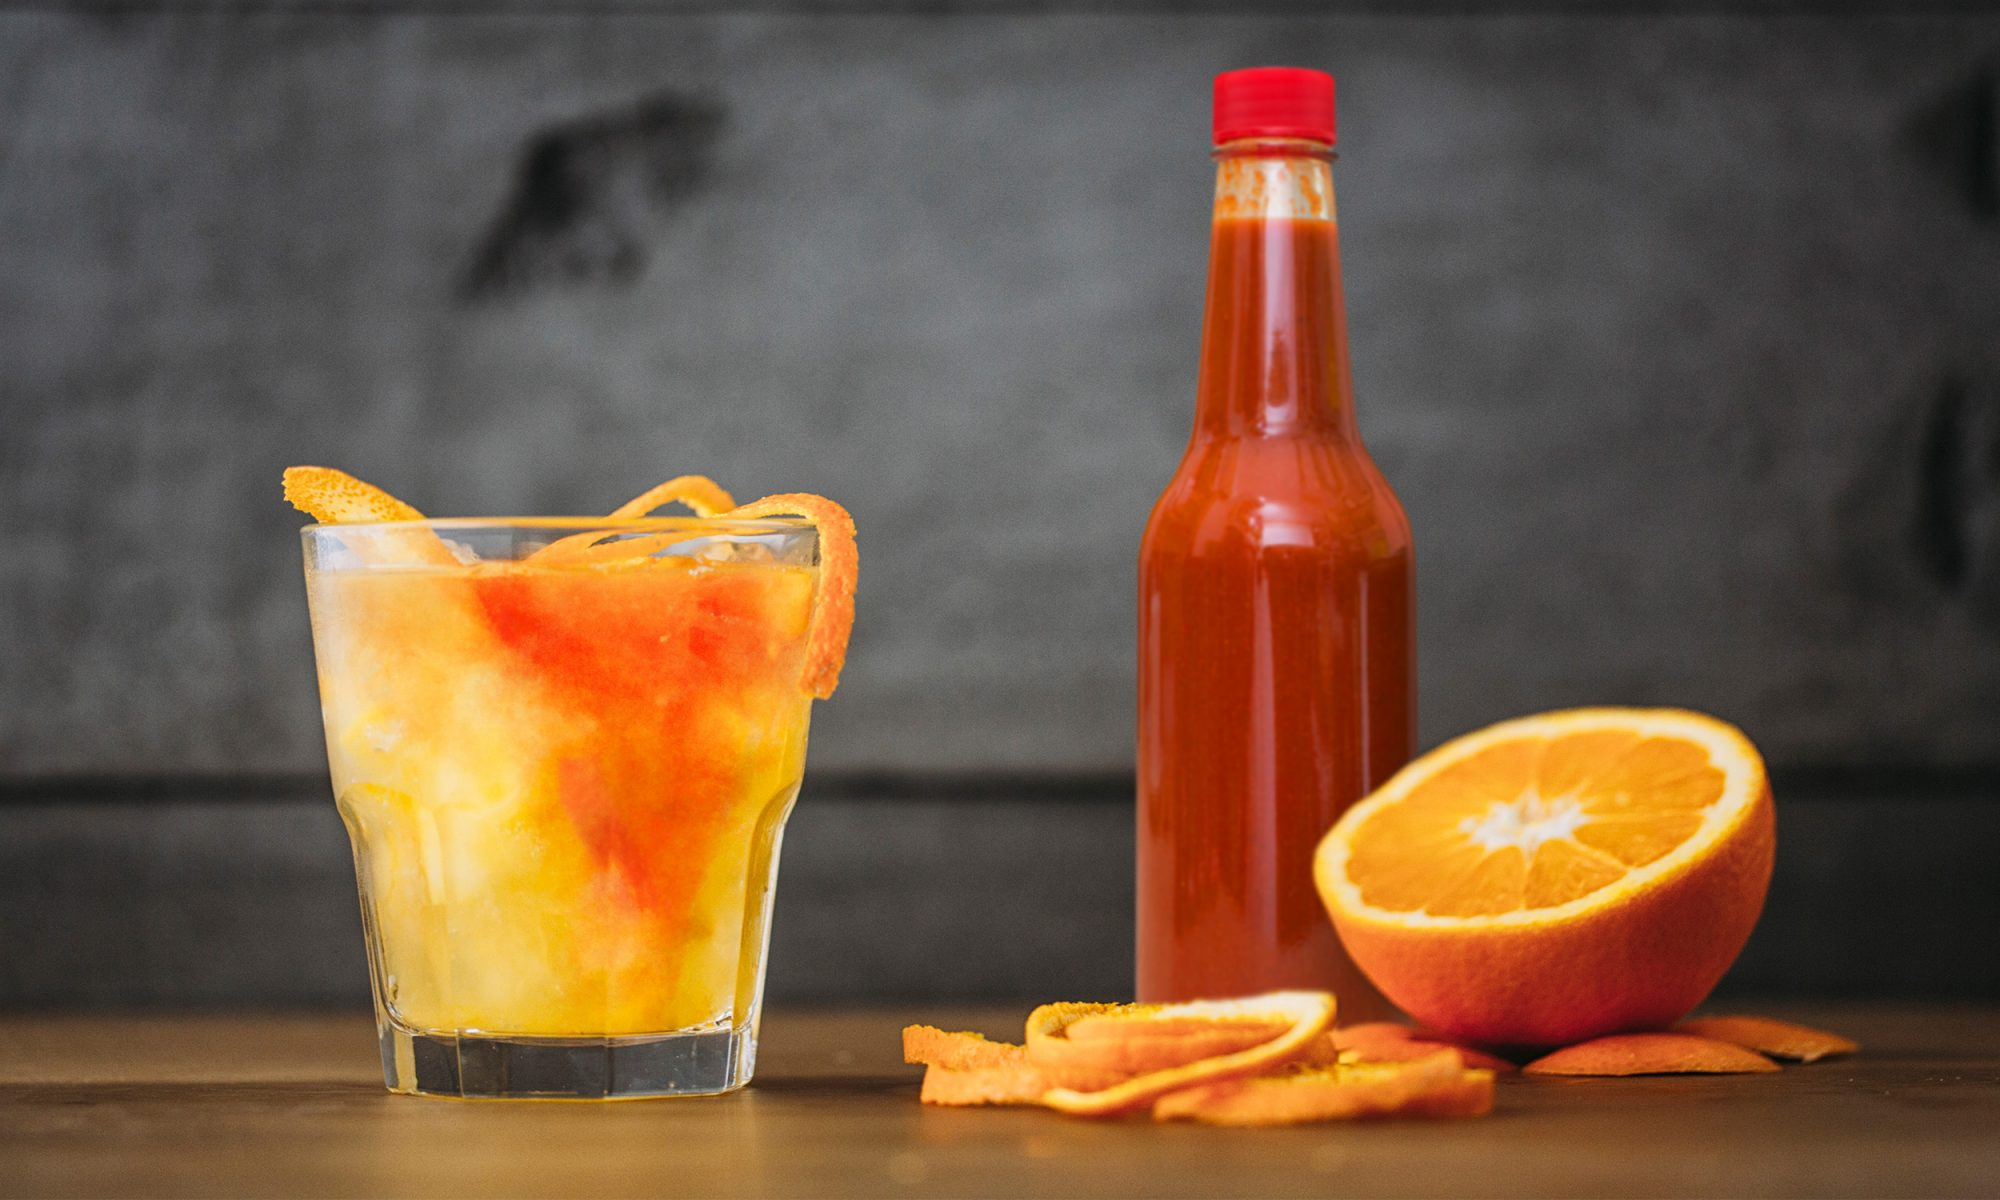 EC: Yes, You Can (and Should) Put Hot Sauce in Your Orange Juice